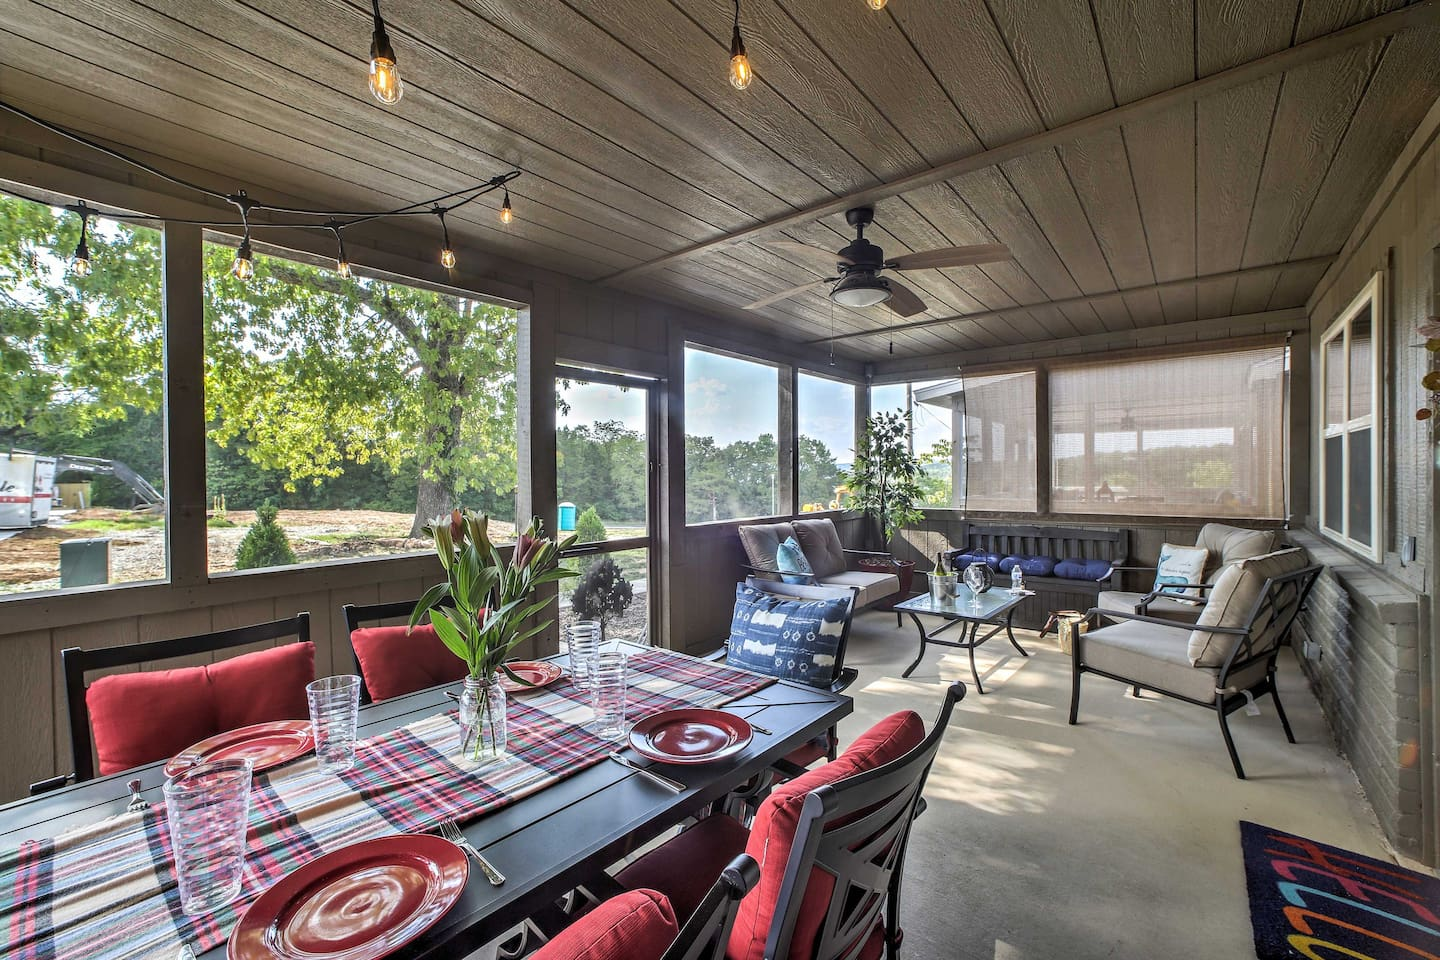 Head to Table Rock Lake and stay at 'Shady Oak Cabin!'